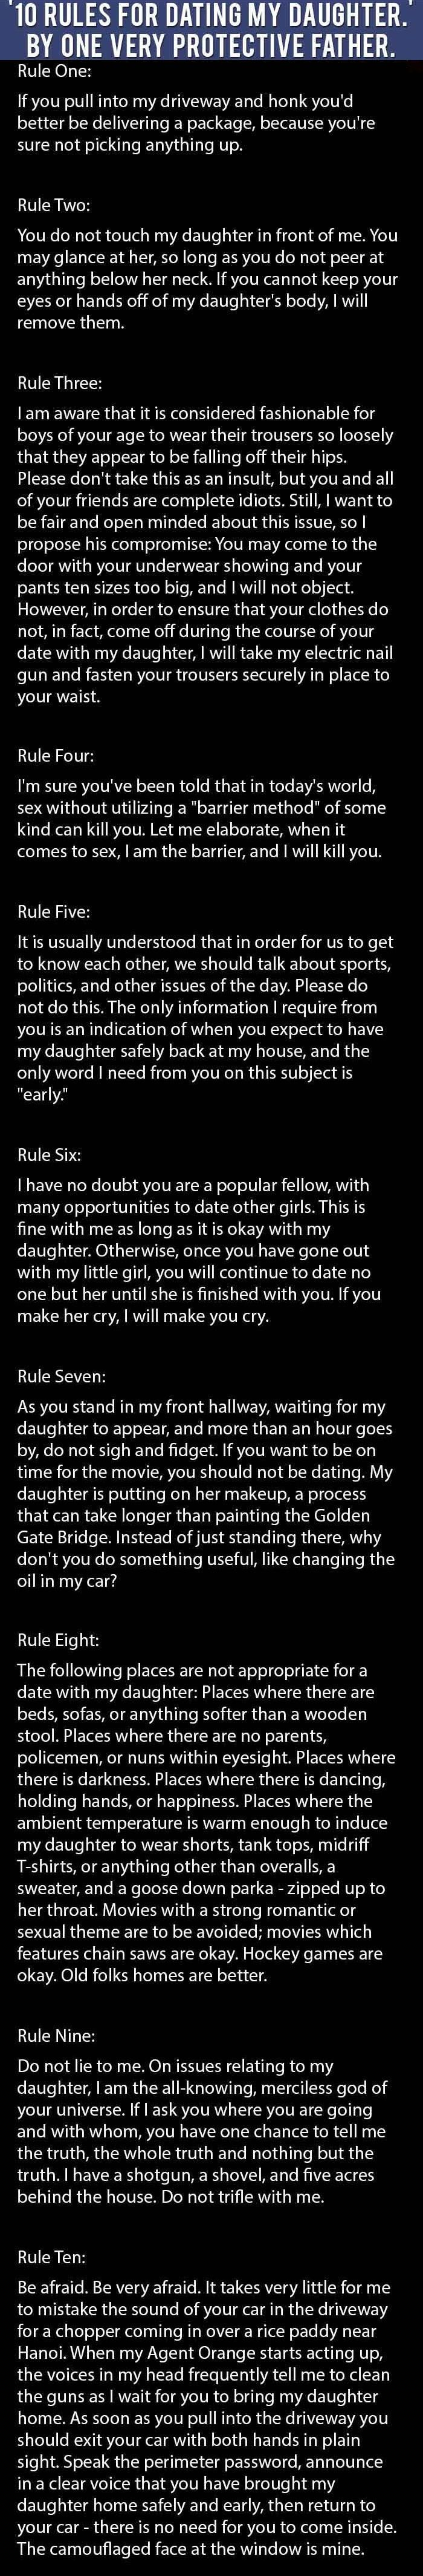 Rules when dating a girl